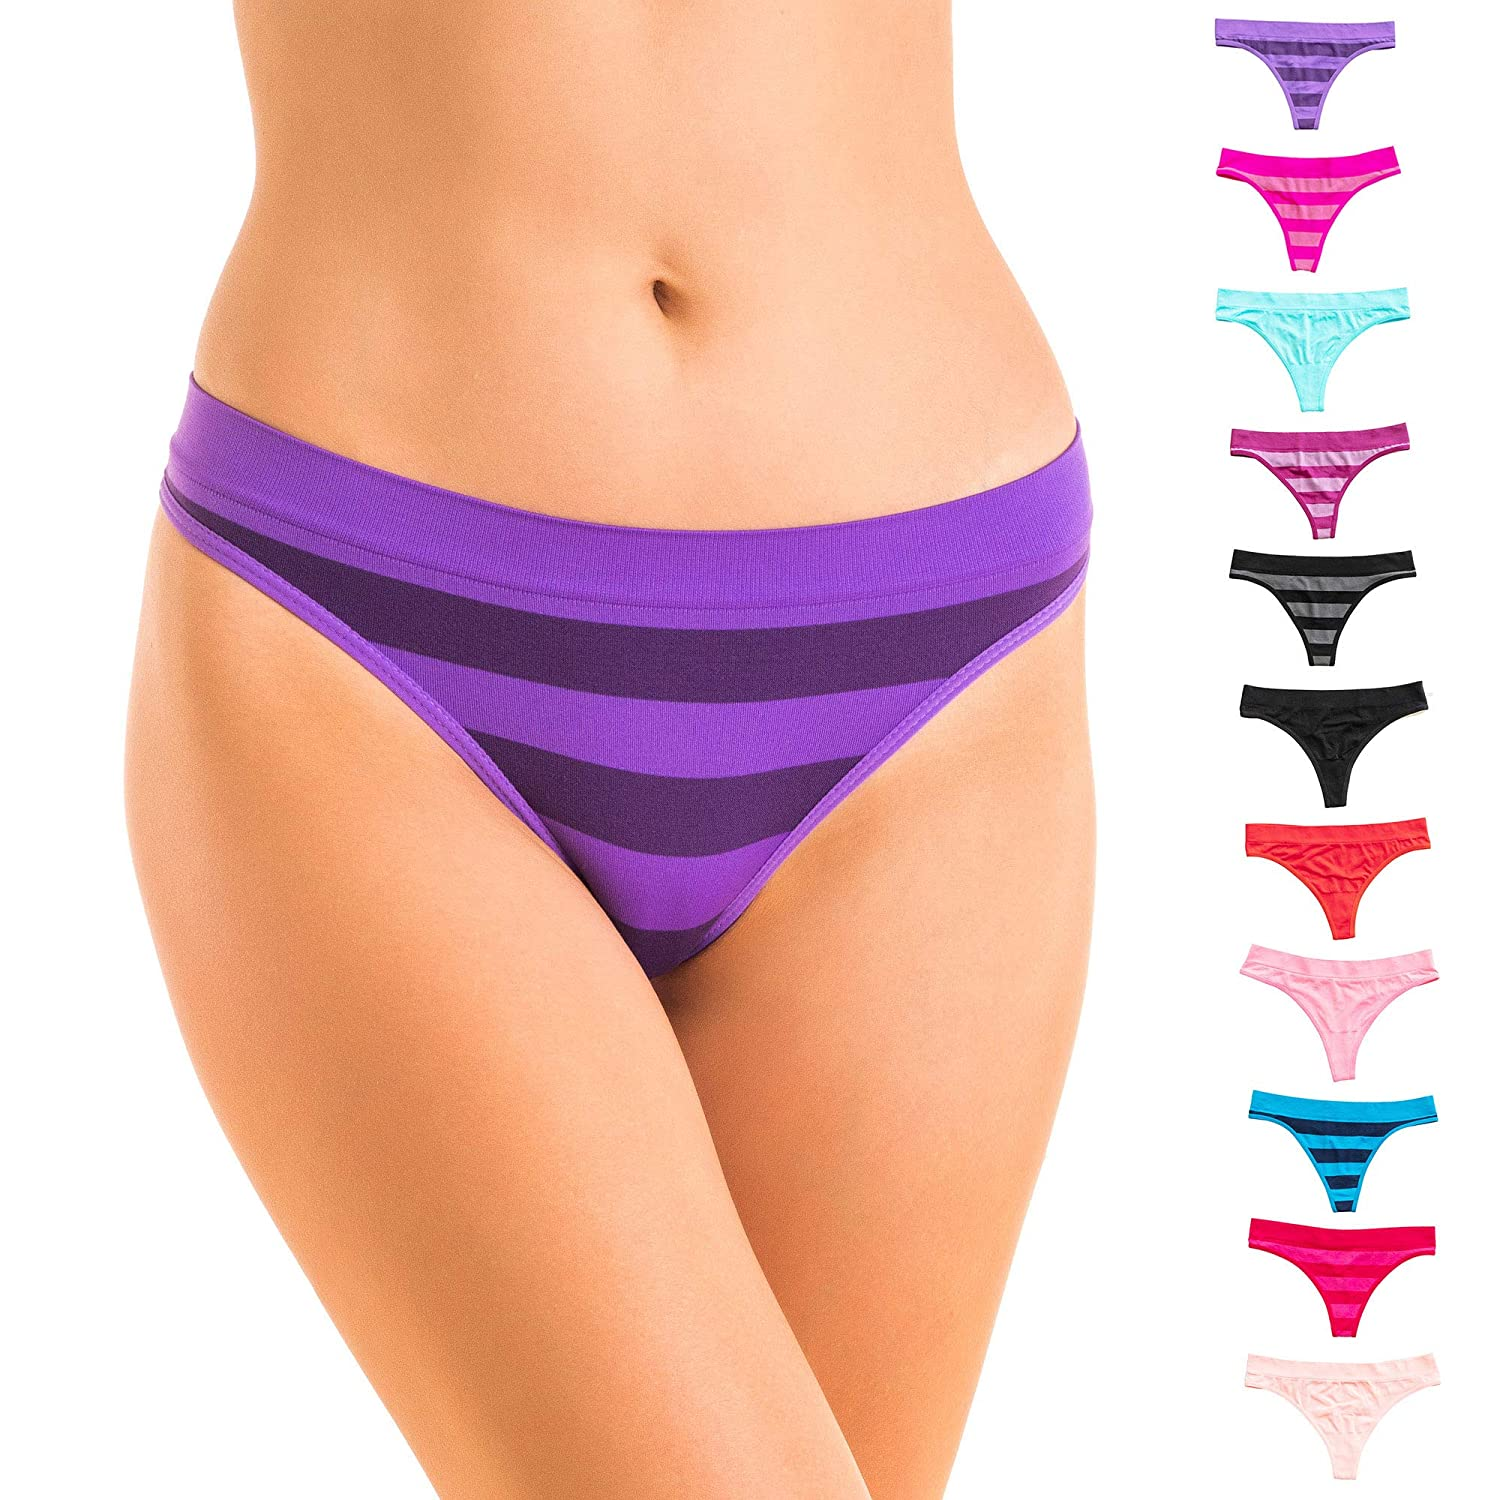 Alyce Ives Intimates Seamless No Show Womens Thong Pack of 12